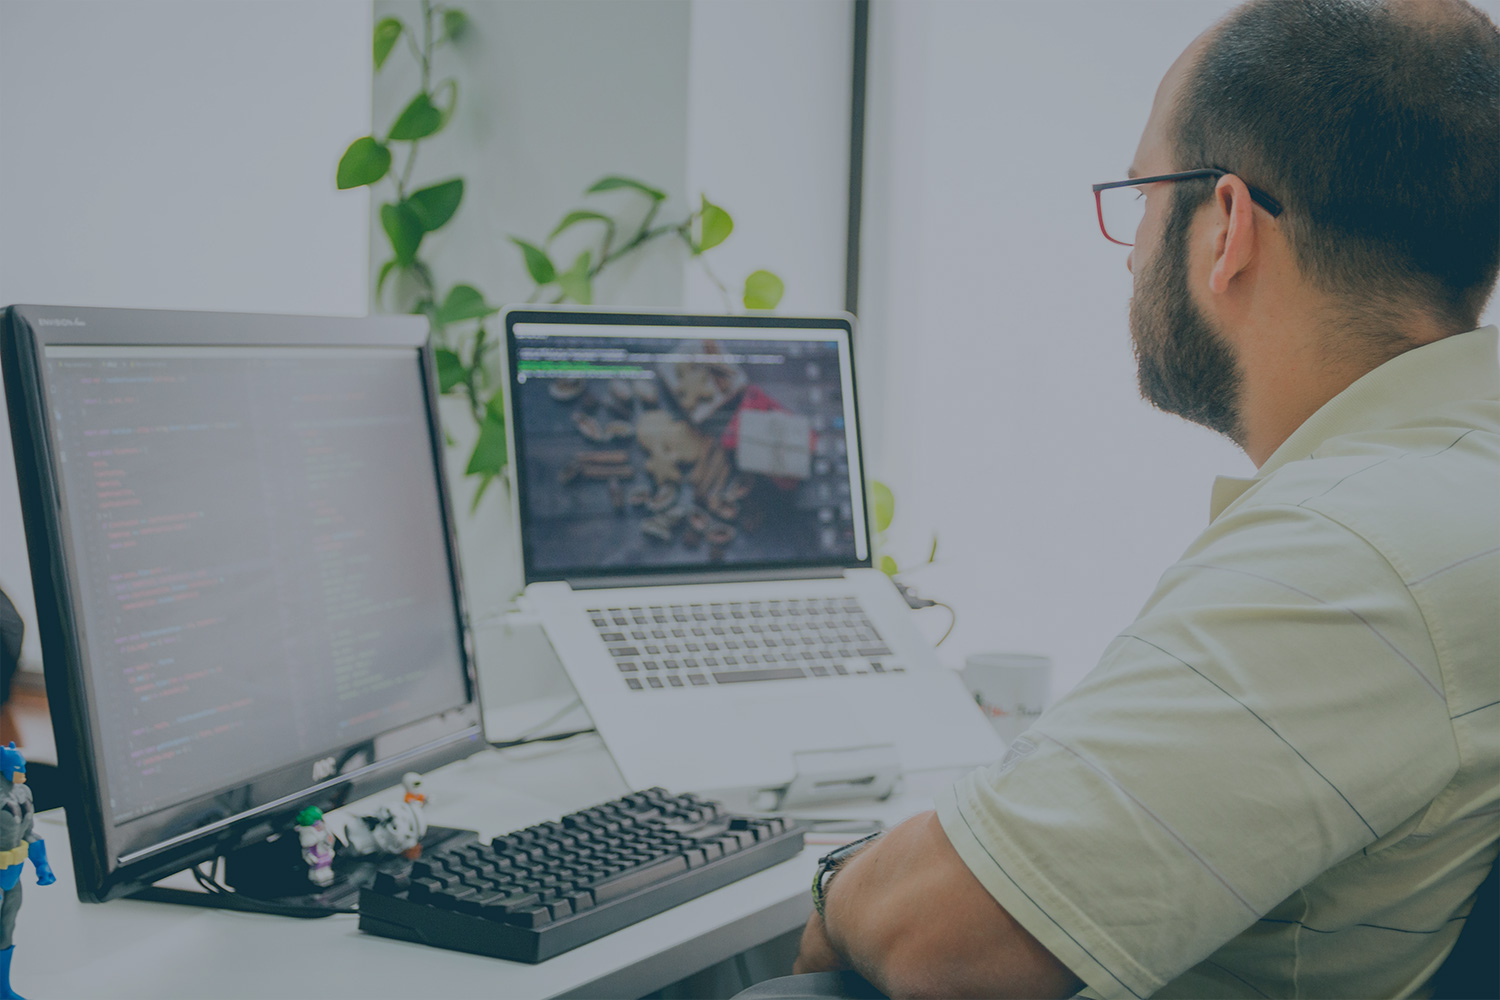 Learning People | IT professional working at desk with 2 screens